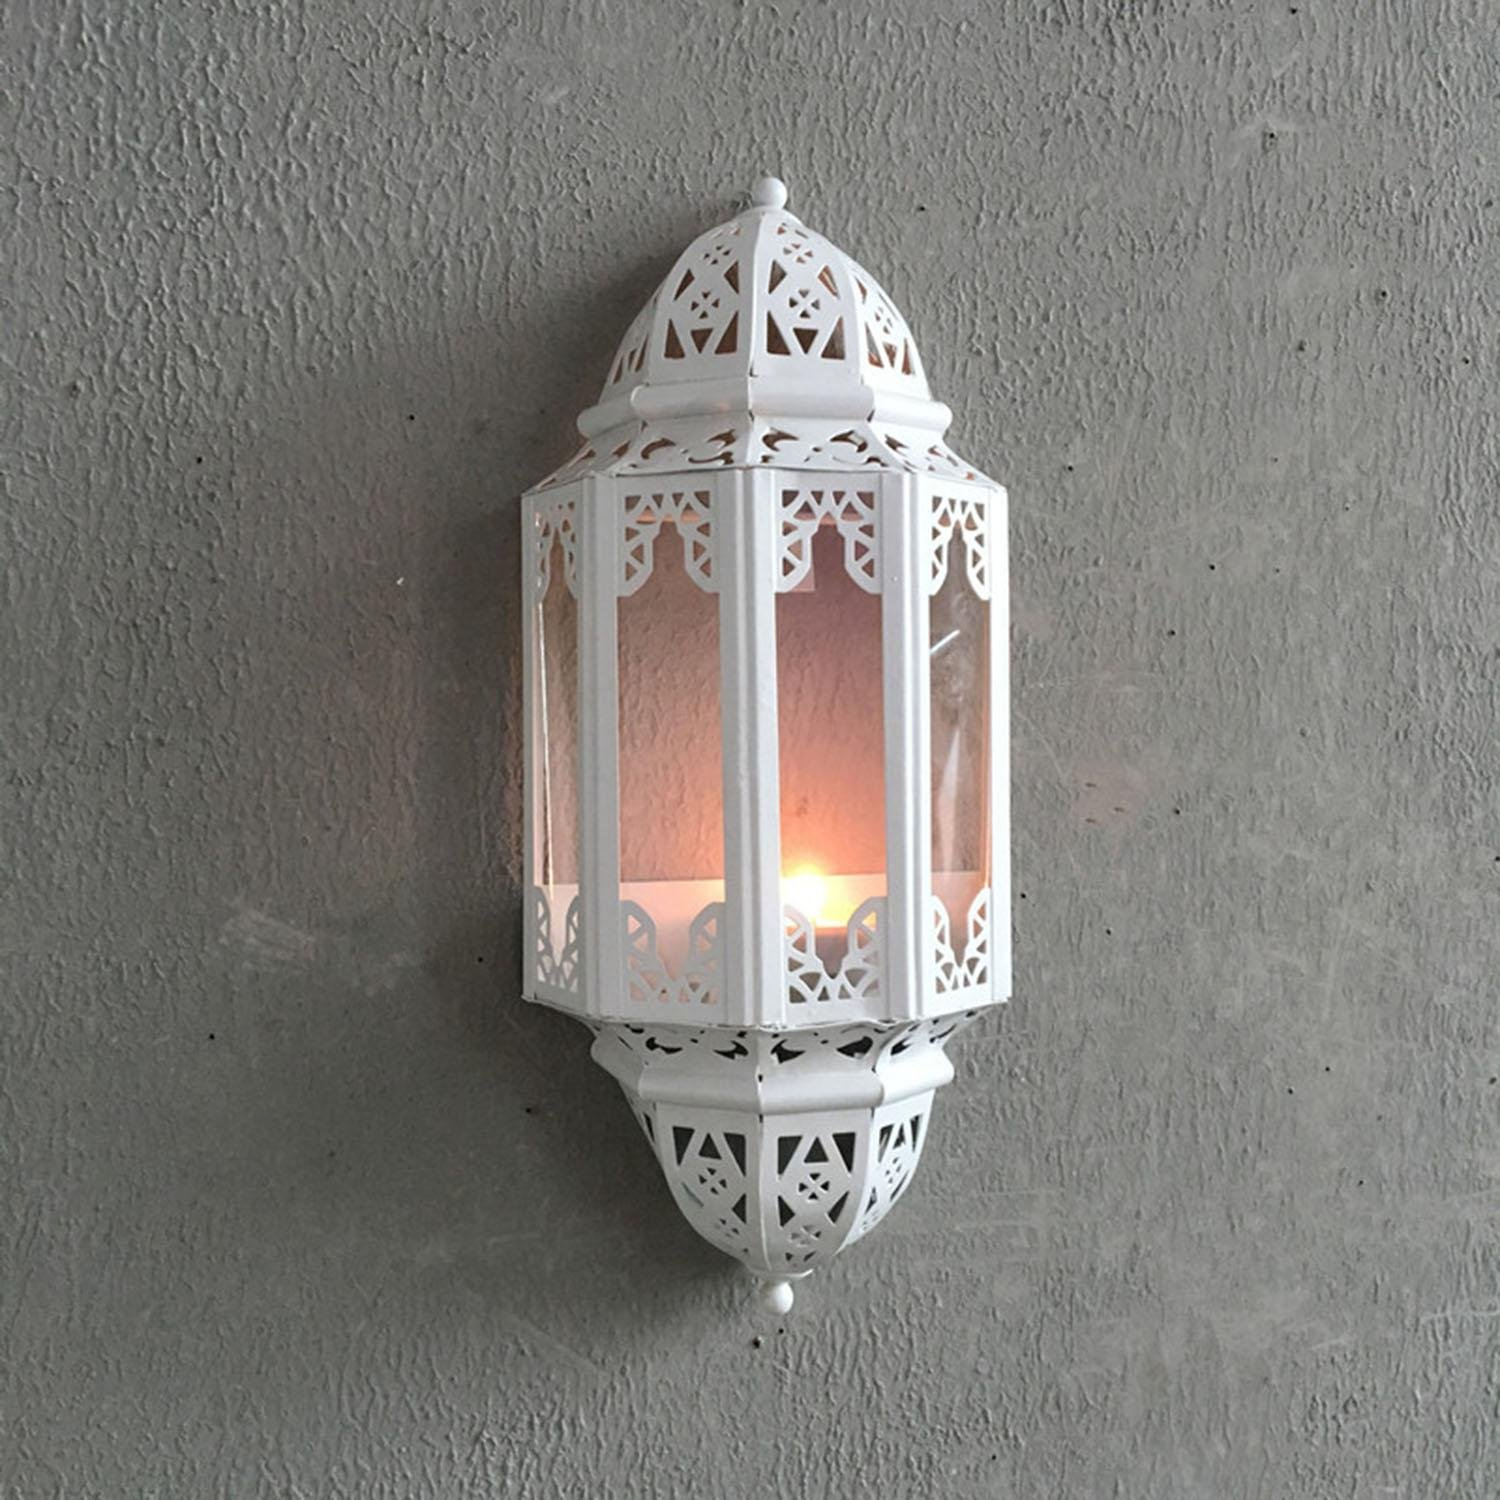 OOFYHOME Wall hanging wall ornaments, wall-mounted iron lamp candlestick, household items wall hanging wall decoration